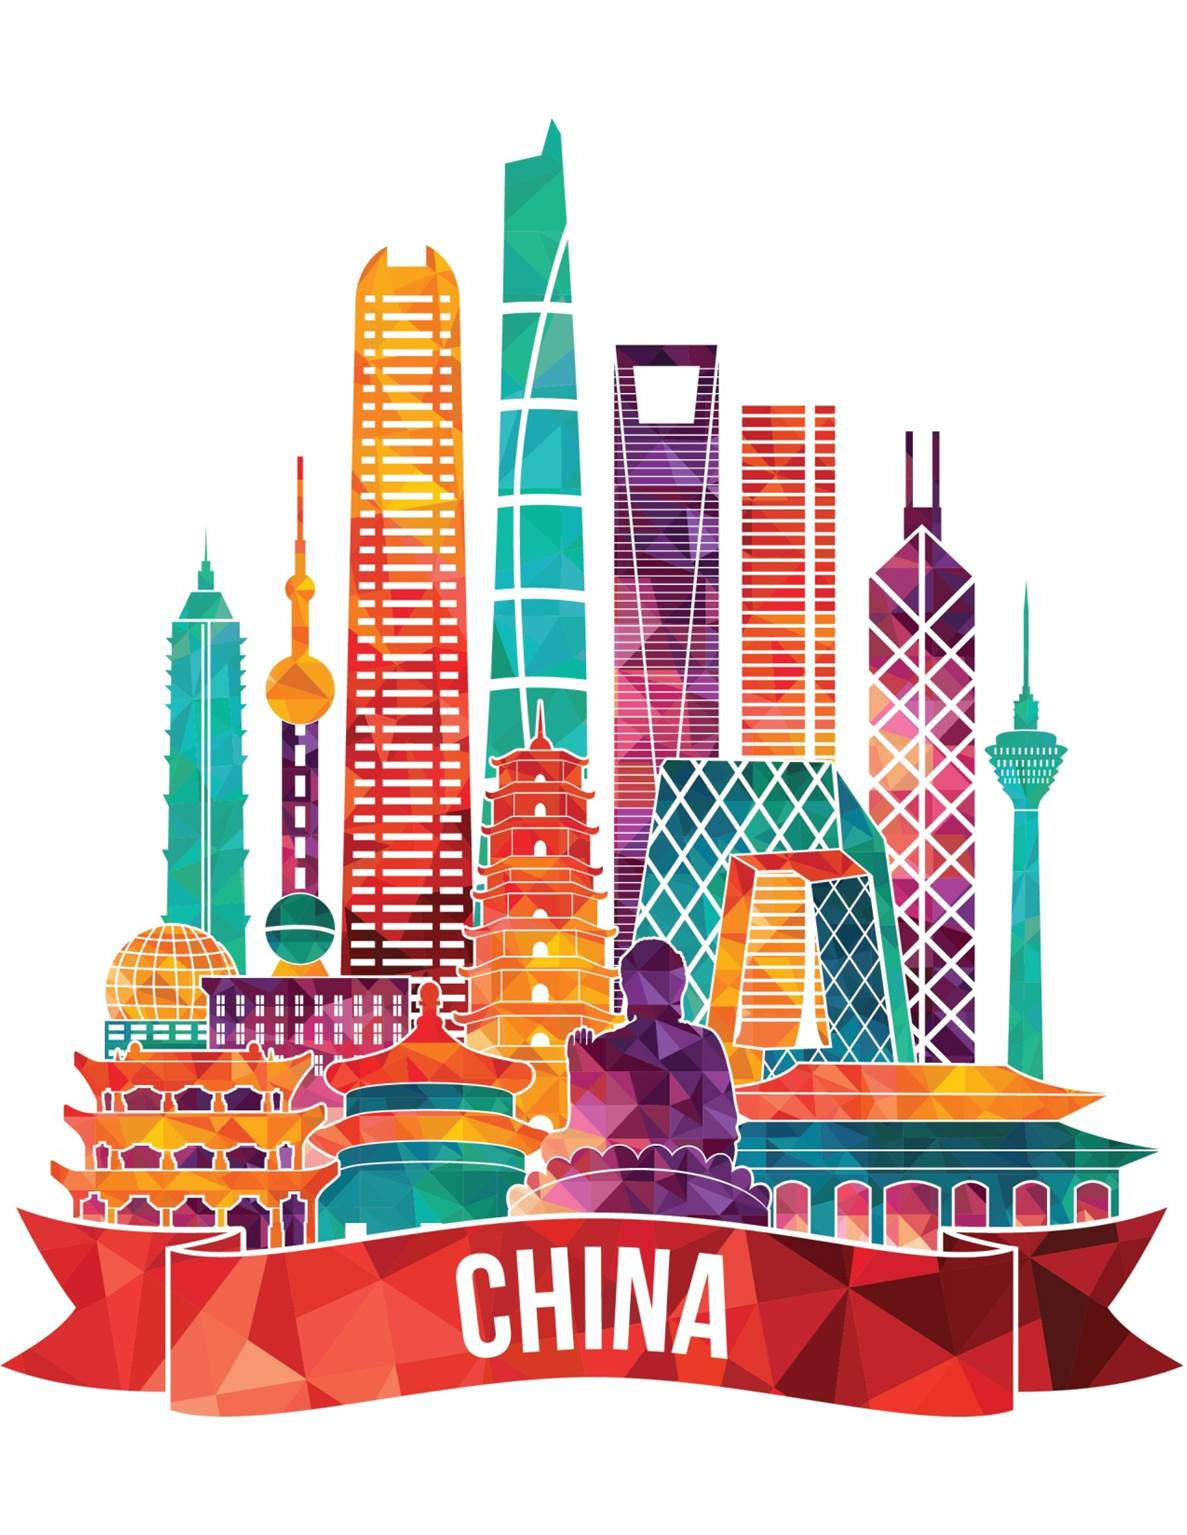 China clipart china travel. What makes a chinese